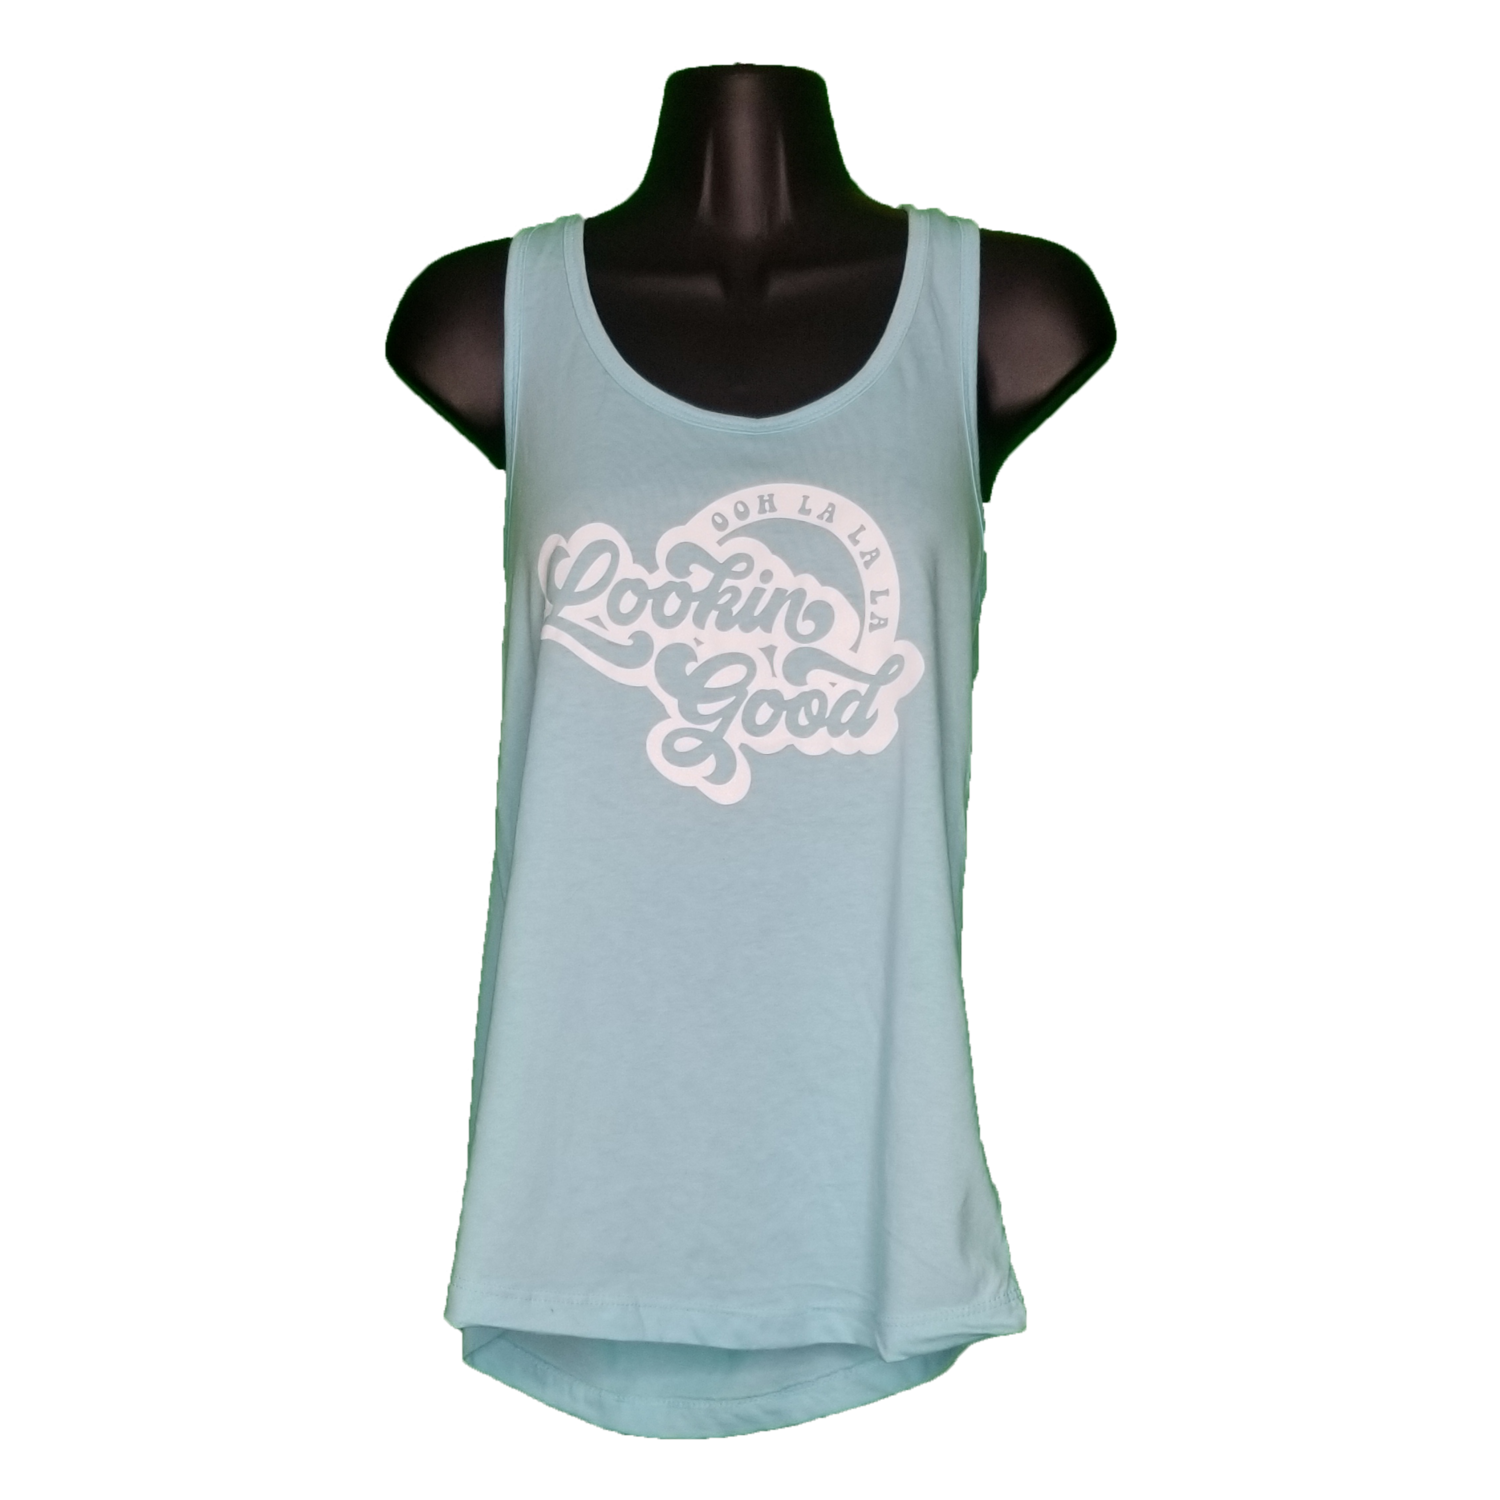 Lookin' Good Women's Tank Top